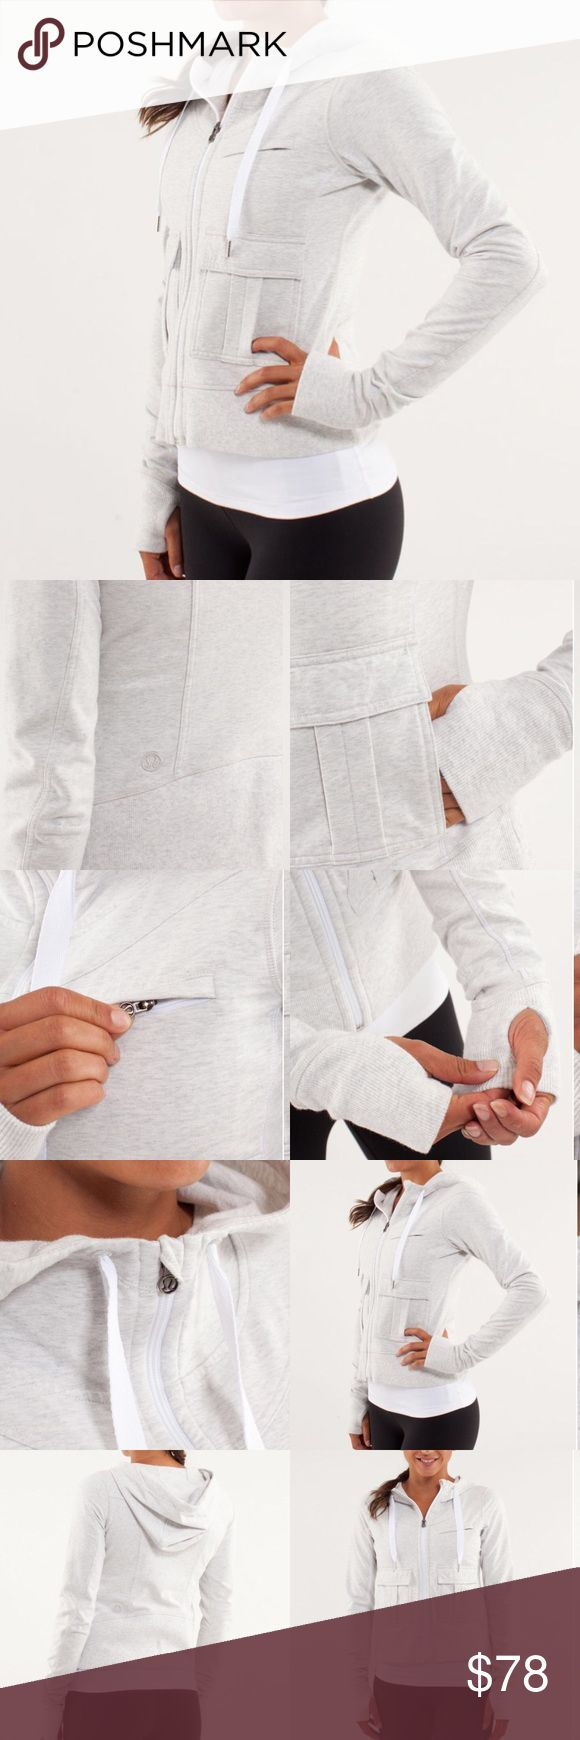 """Lululemon • Carry & Go Hoodie Zip Jacket Excellent condition. Heathered white. Pockets at front. Full zip.   •No Trades  •Offers Welcomed  •Add any item/s to a bundle using the """"add to bundle feature"""" to receive a private discount 🌵✨ lululemon athletica Tops Sweatshirts & Hoodies"""